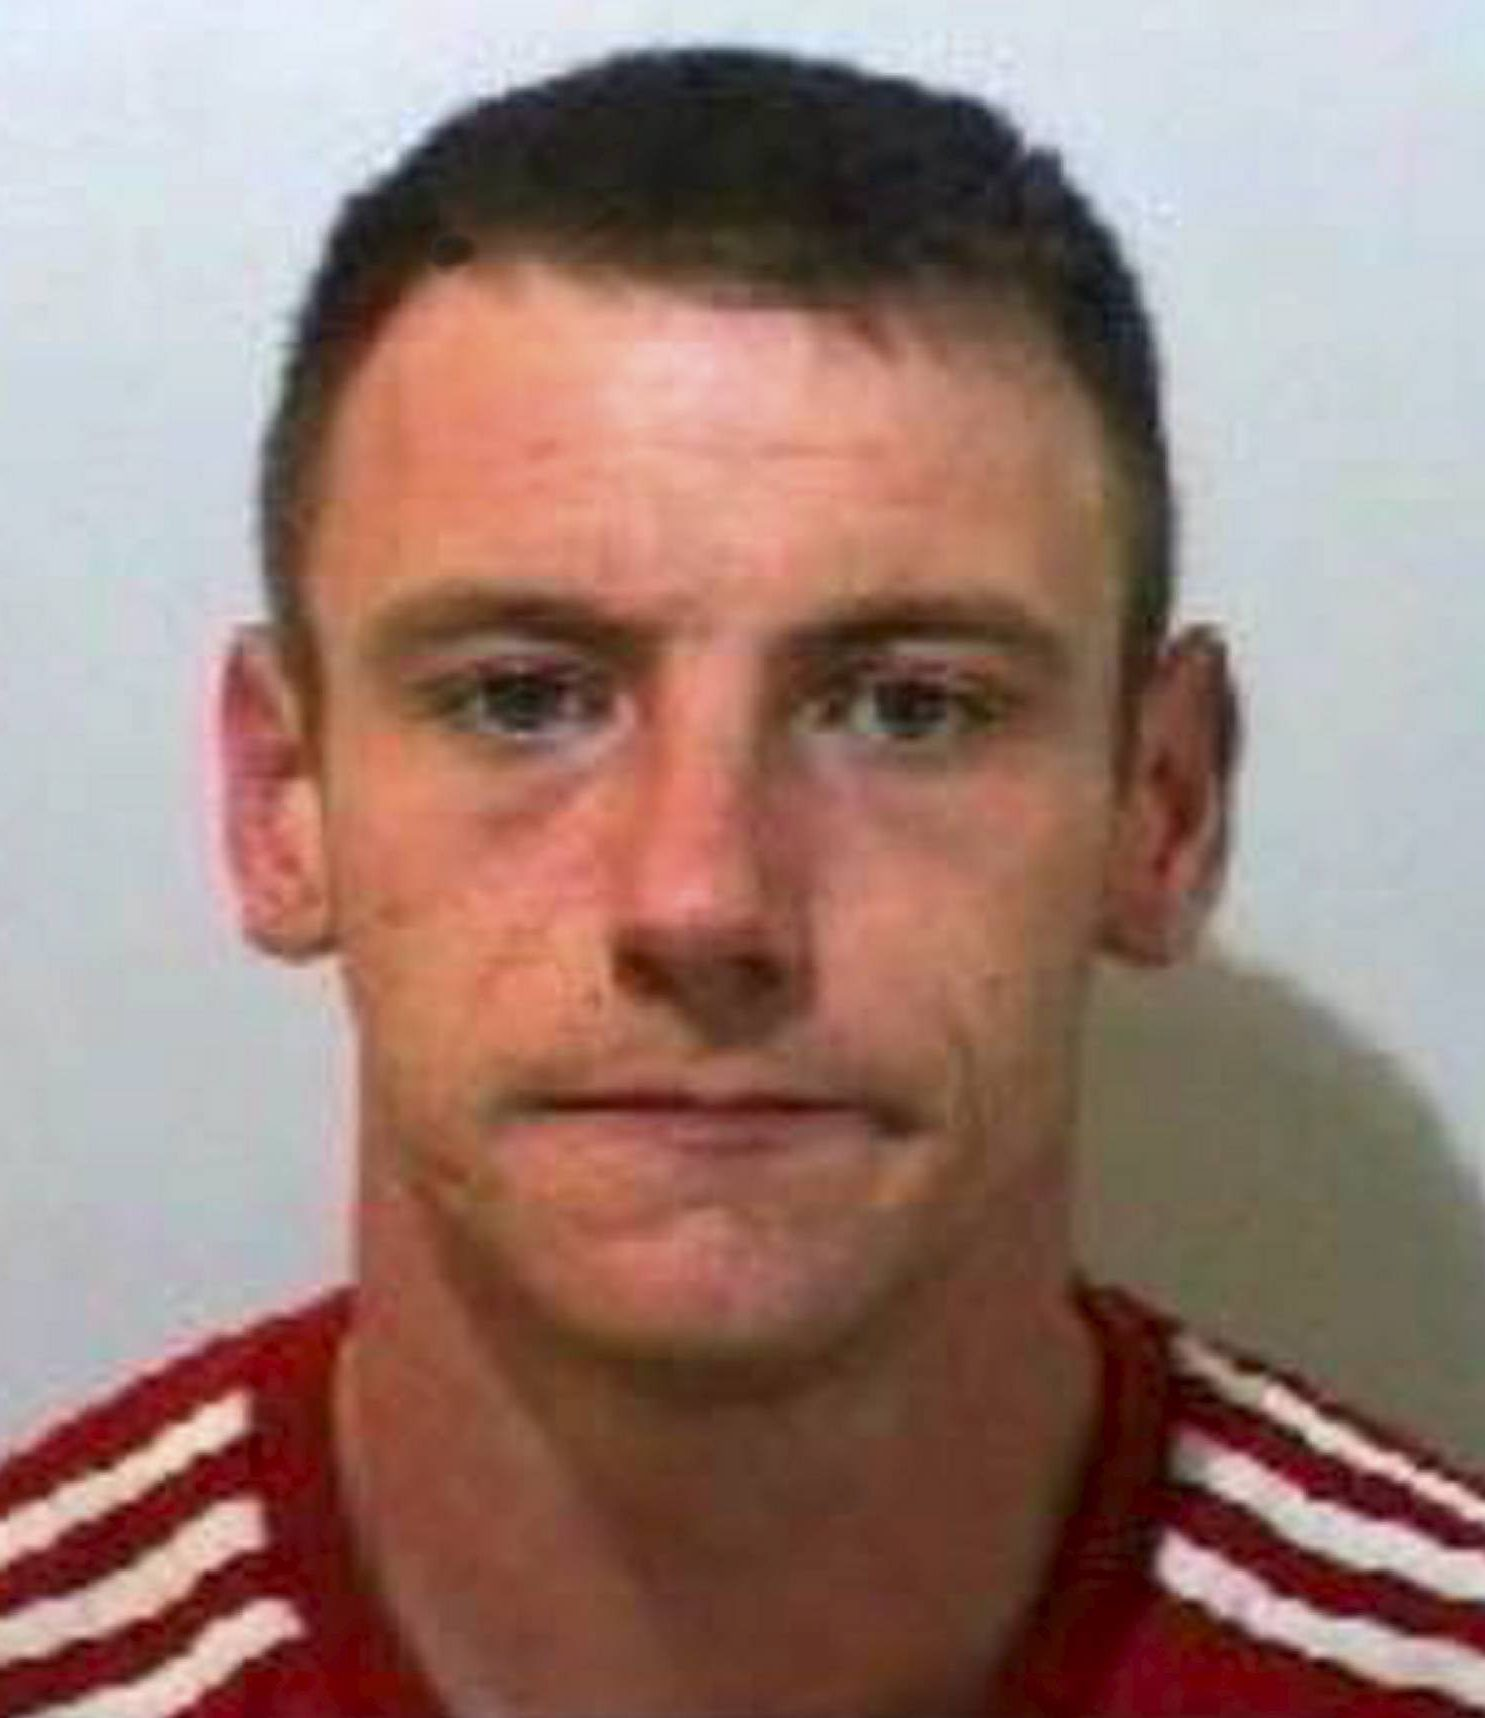 Dated: 15/02/2019 Leo Irwin, 27, from Wallsend, North Tyneside, who brutally attacked a woman after climbing into her home through a window, has been jailed for eight years at Newcastle Crown Court after being convicted of rape and assault. See story North News